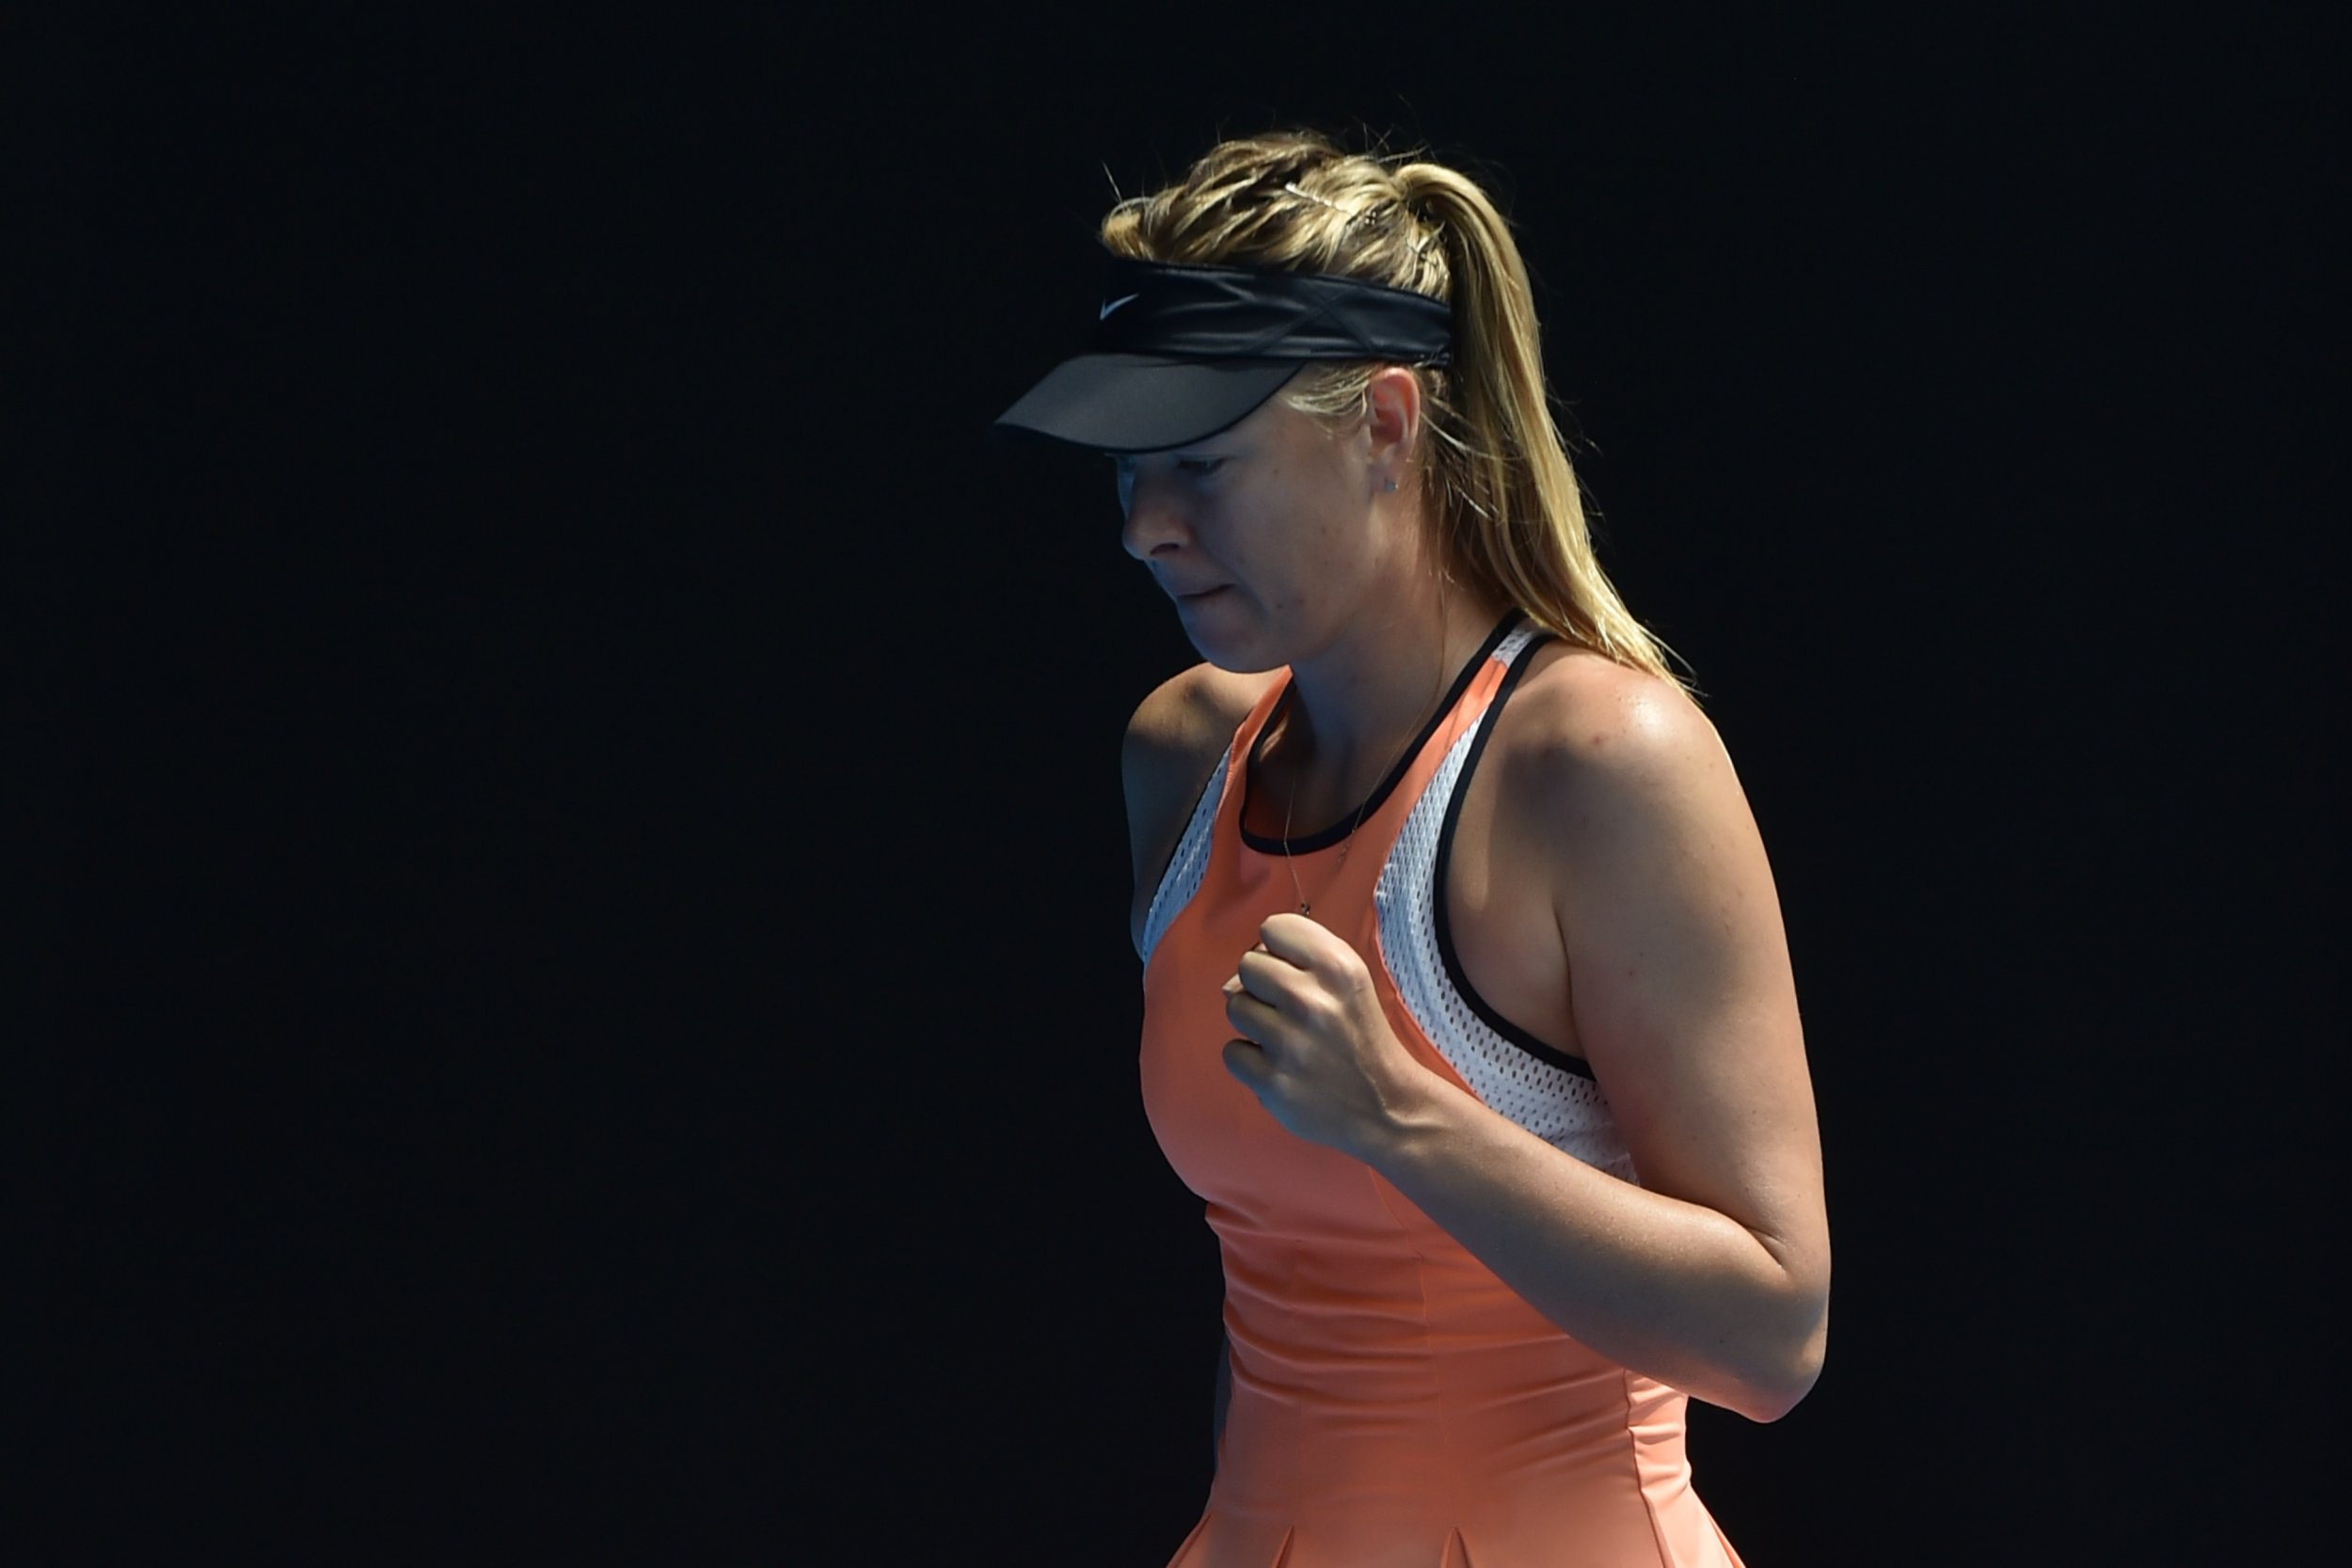 Maria Sharapova may benefit from a WADA rule change regarding meldonium.